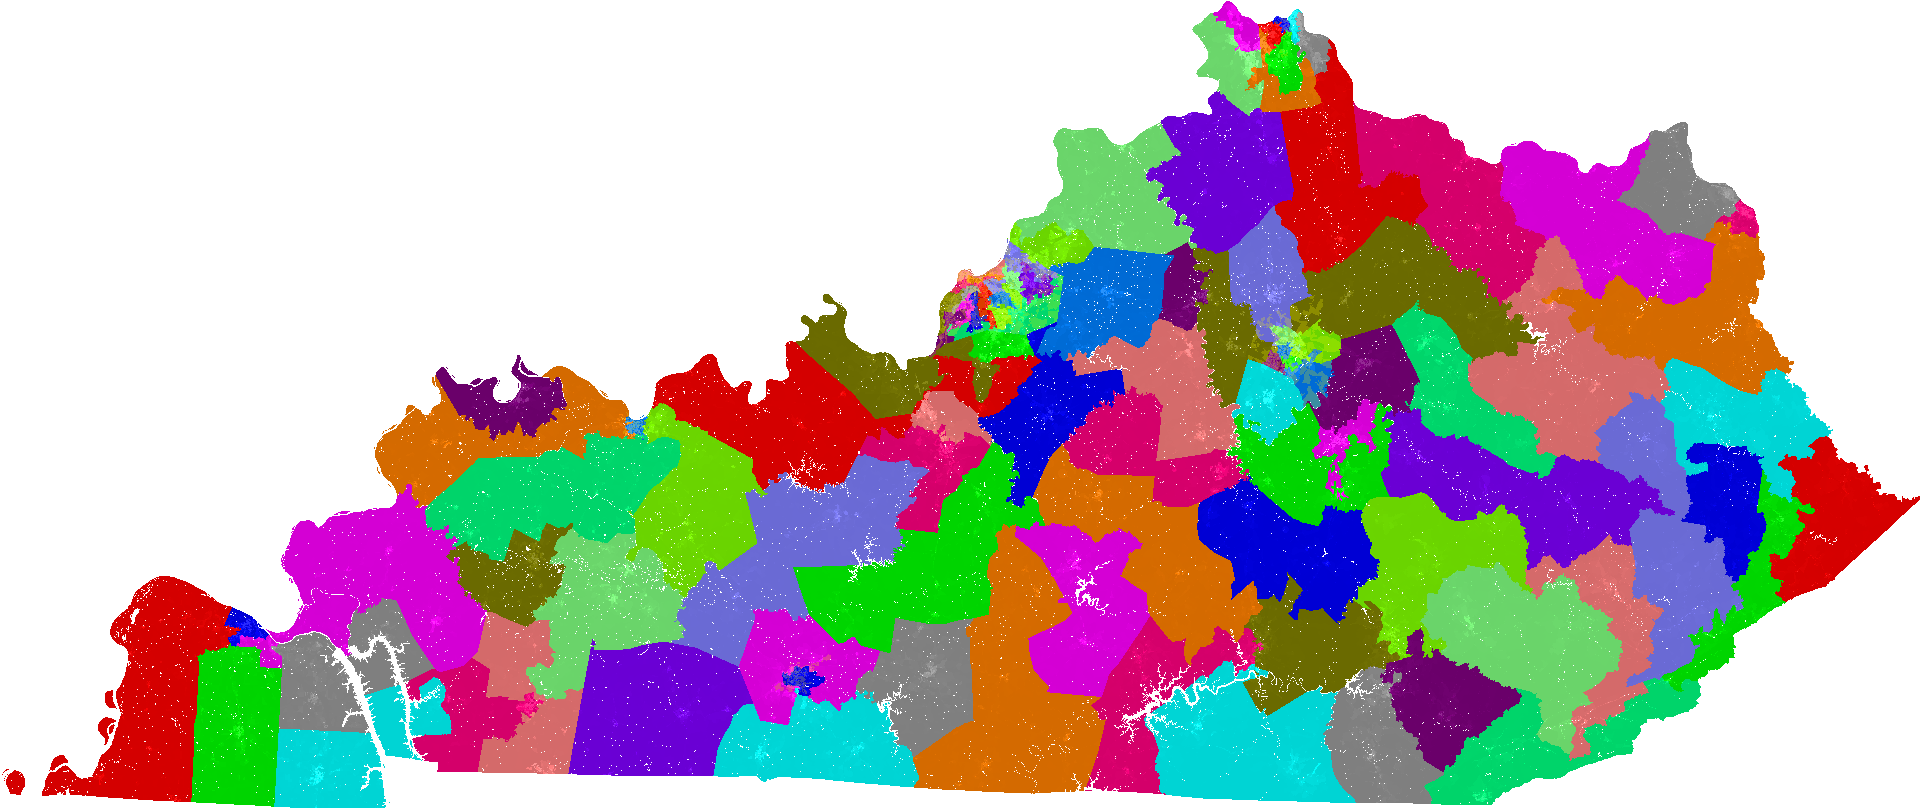 Kentucky House of Representatives Redistricting on ky phone map, ky county map, ky add districts map, ky state house districts, ky election map, united states districts map, house of representatives map, ky state representatives districts map, ky school district map, ky redistricting maps,